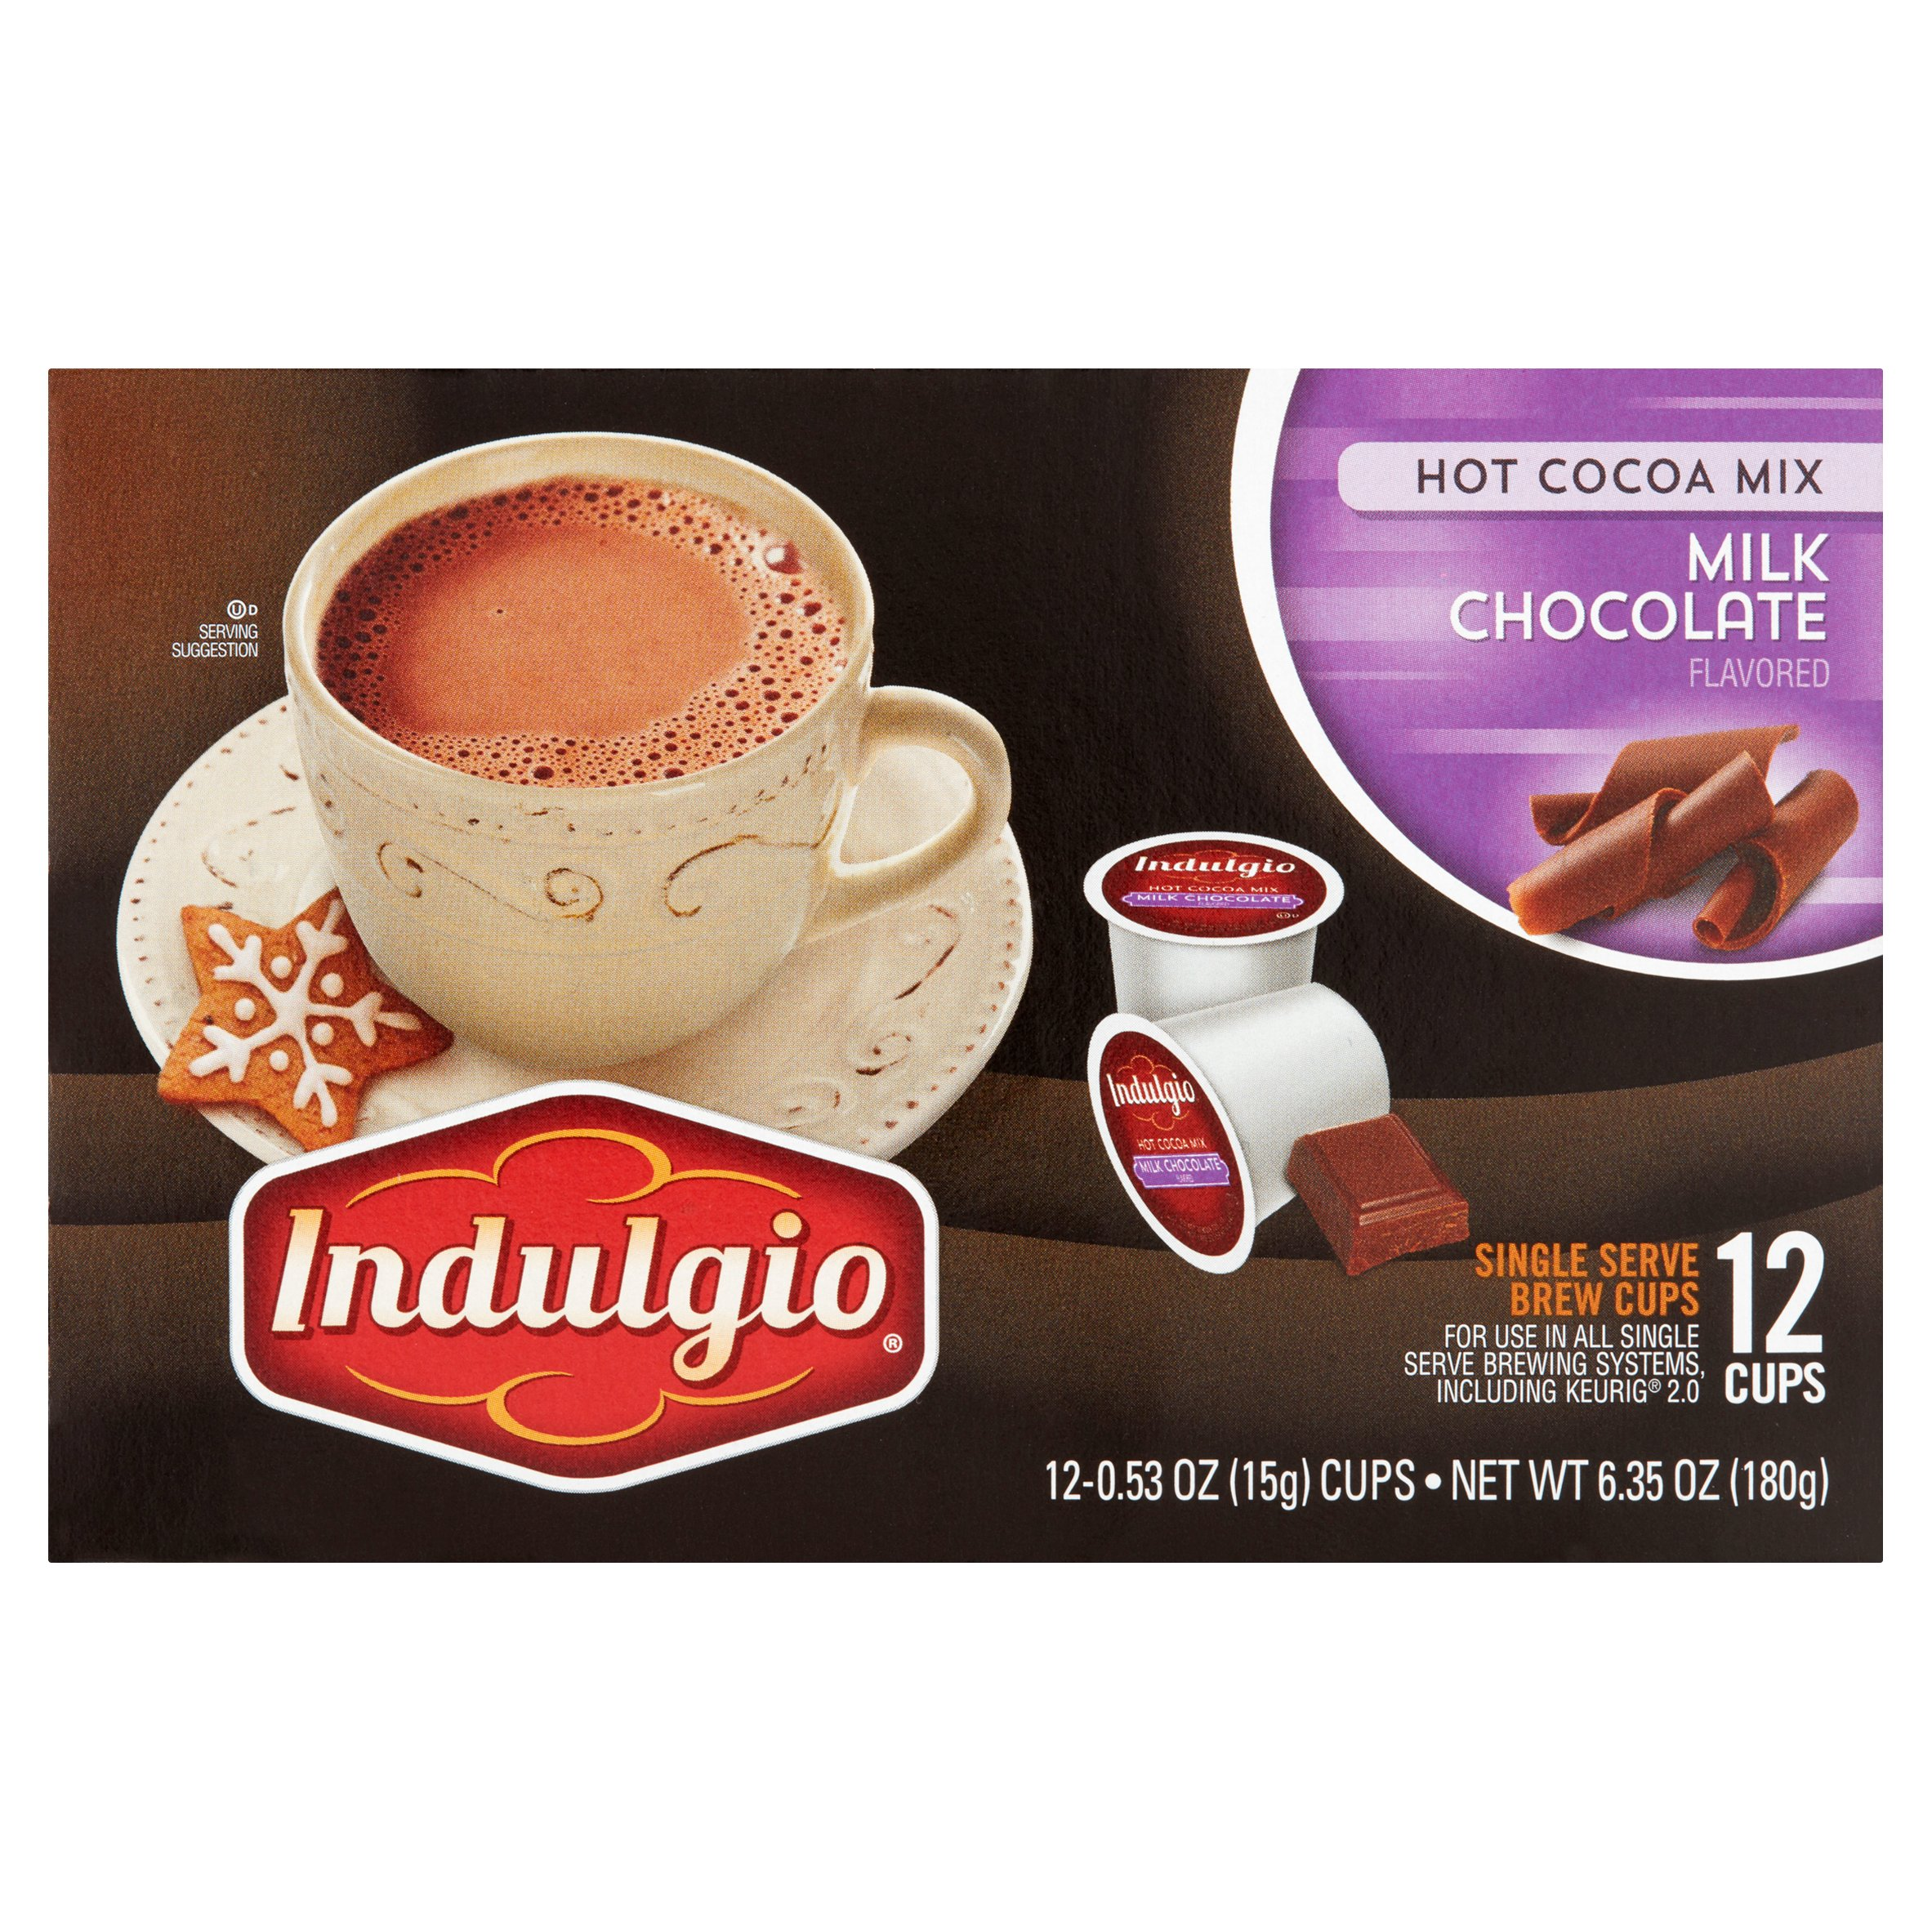 Indulgio Milk Chocolate Flavored Hot Cocoa Mix, 0.53 oz, 12 count by Trilliant Food & Nutrition, LLC